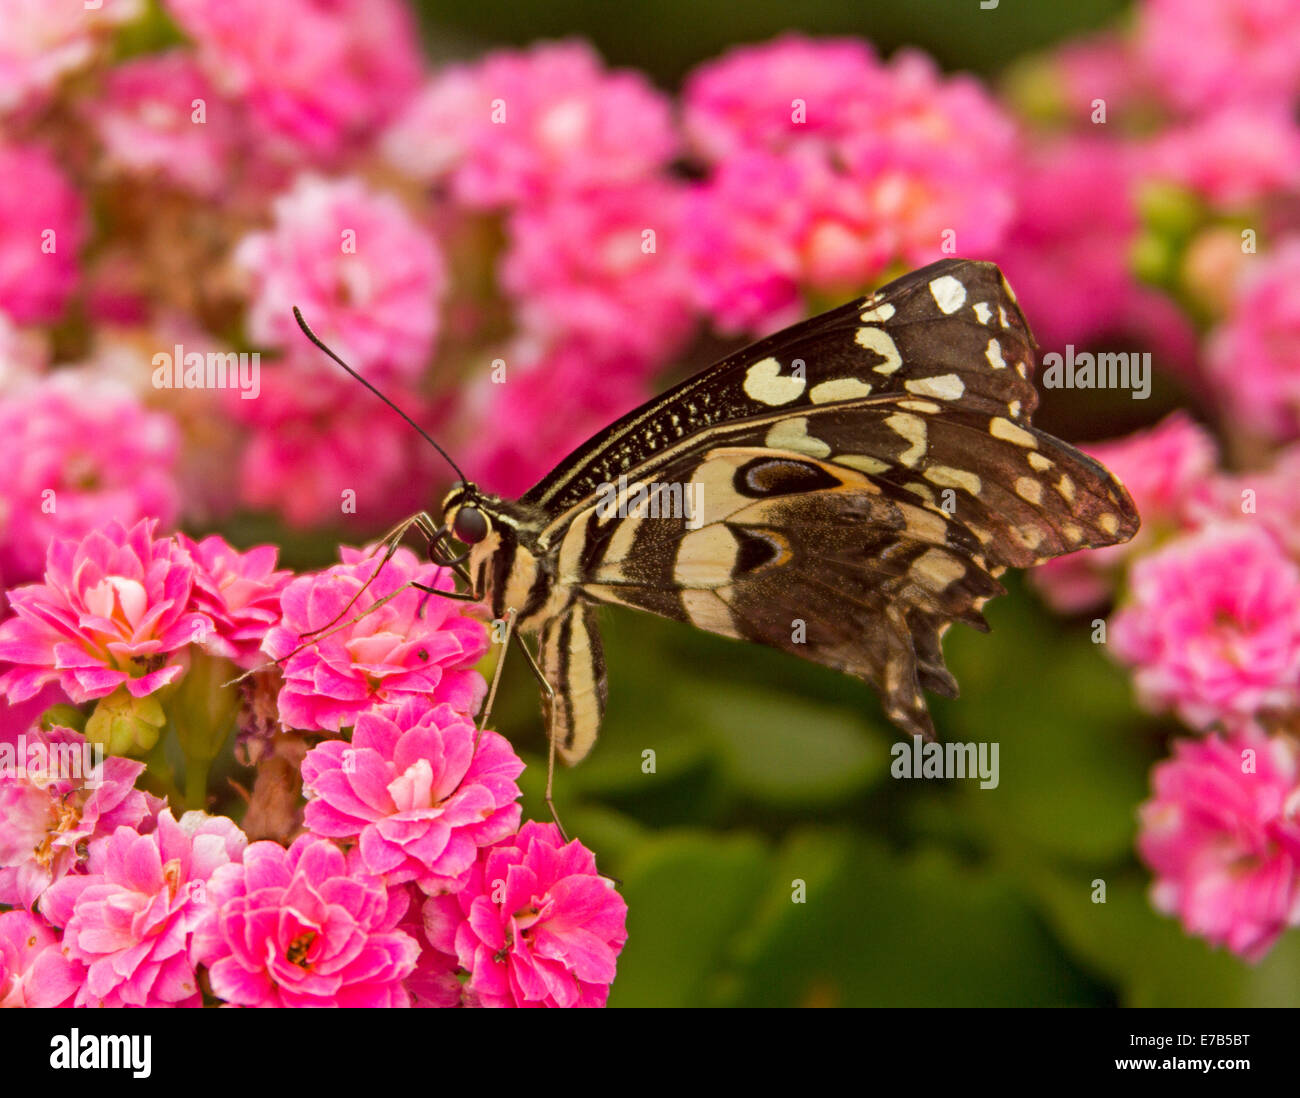 Attractive black and white butterfly feeding on cluster of  bright pink flowers - Stock Image